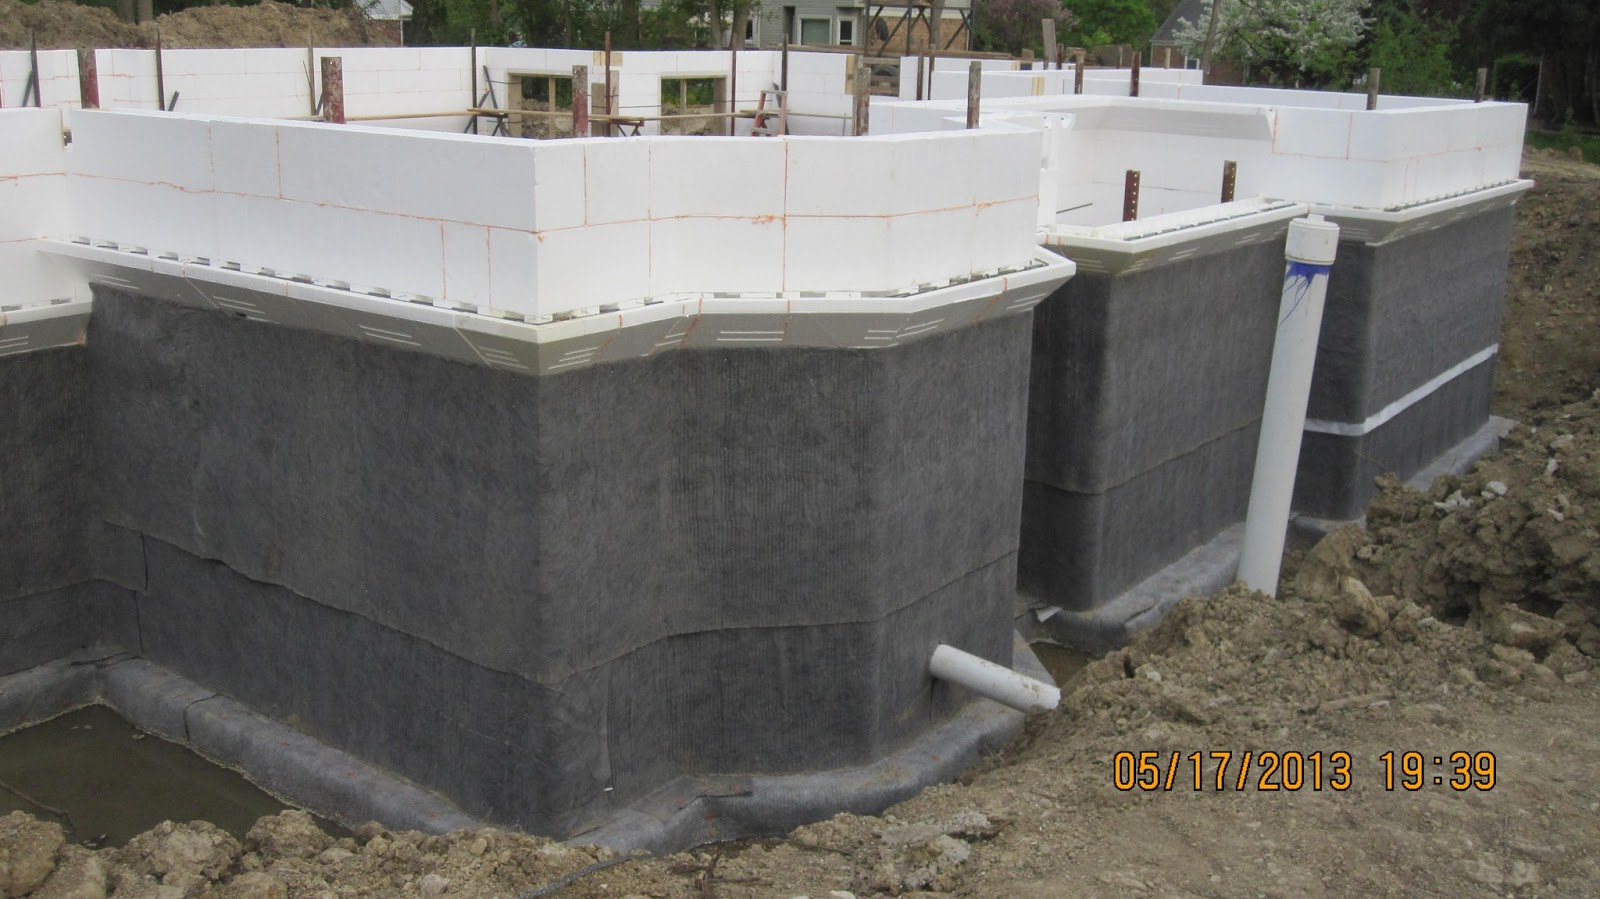 Energy efficient building network may 2013 - Sealing exterior cinder block walls ...